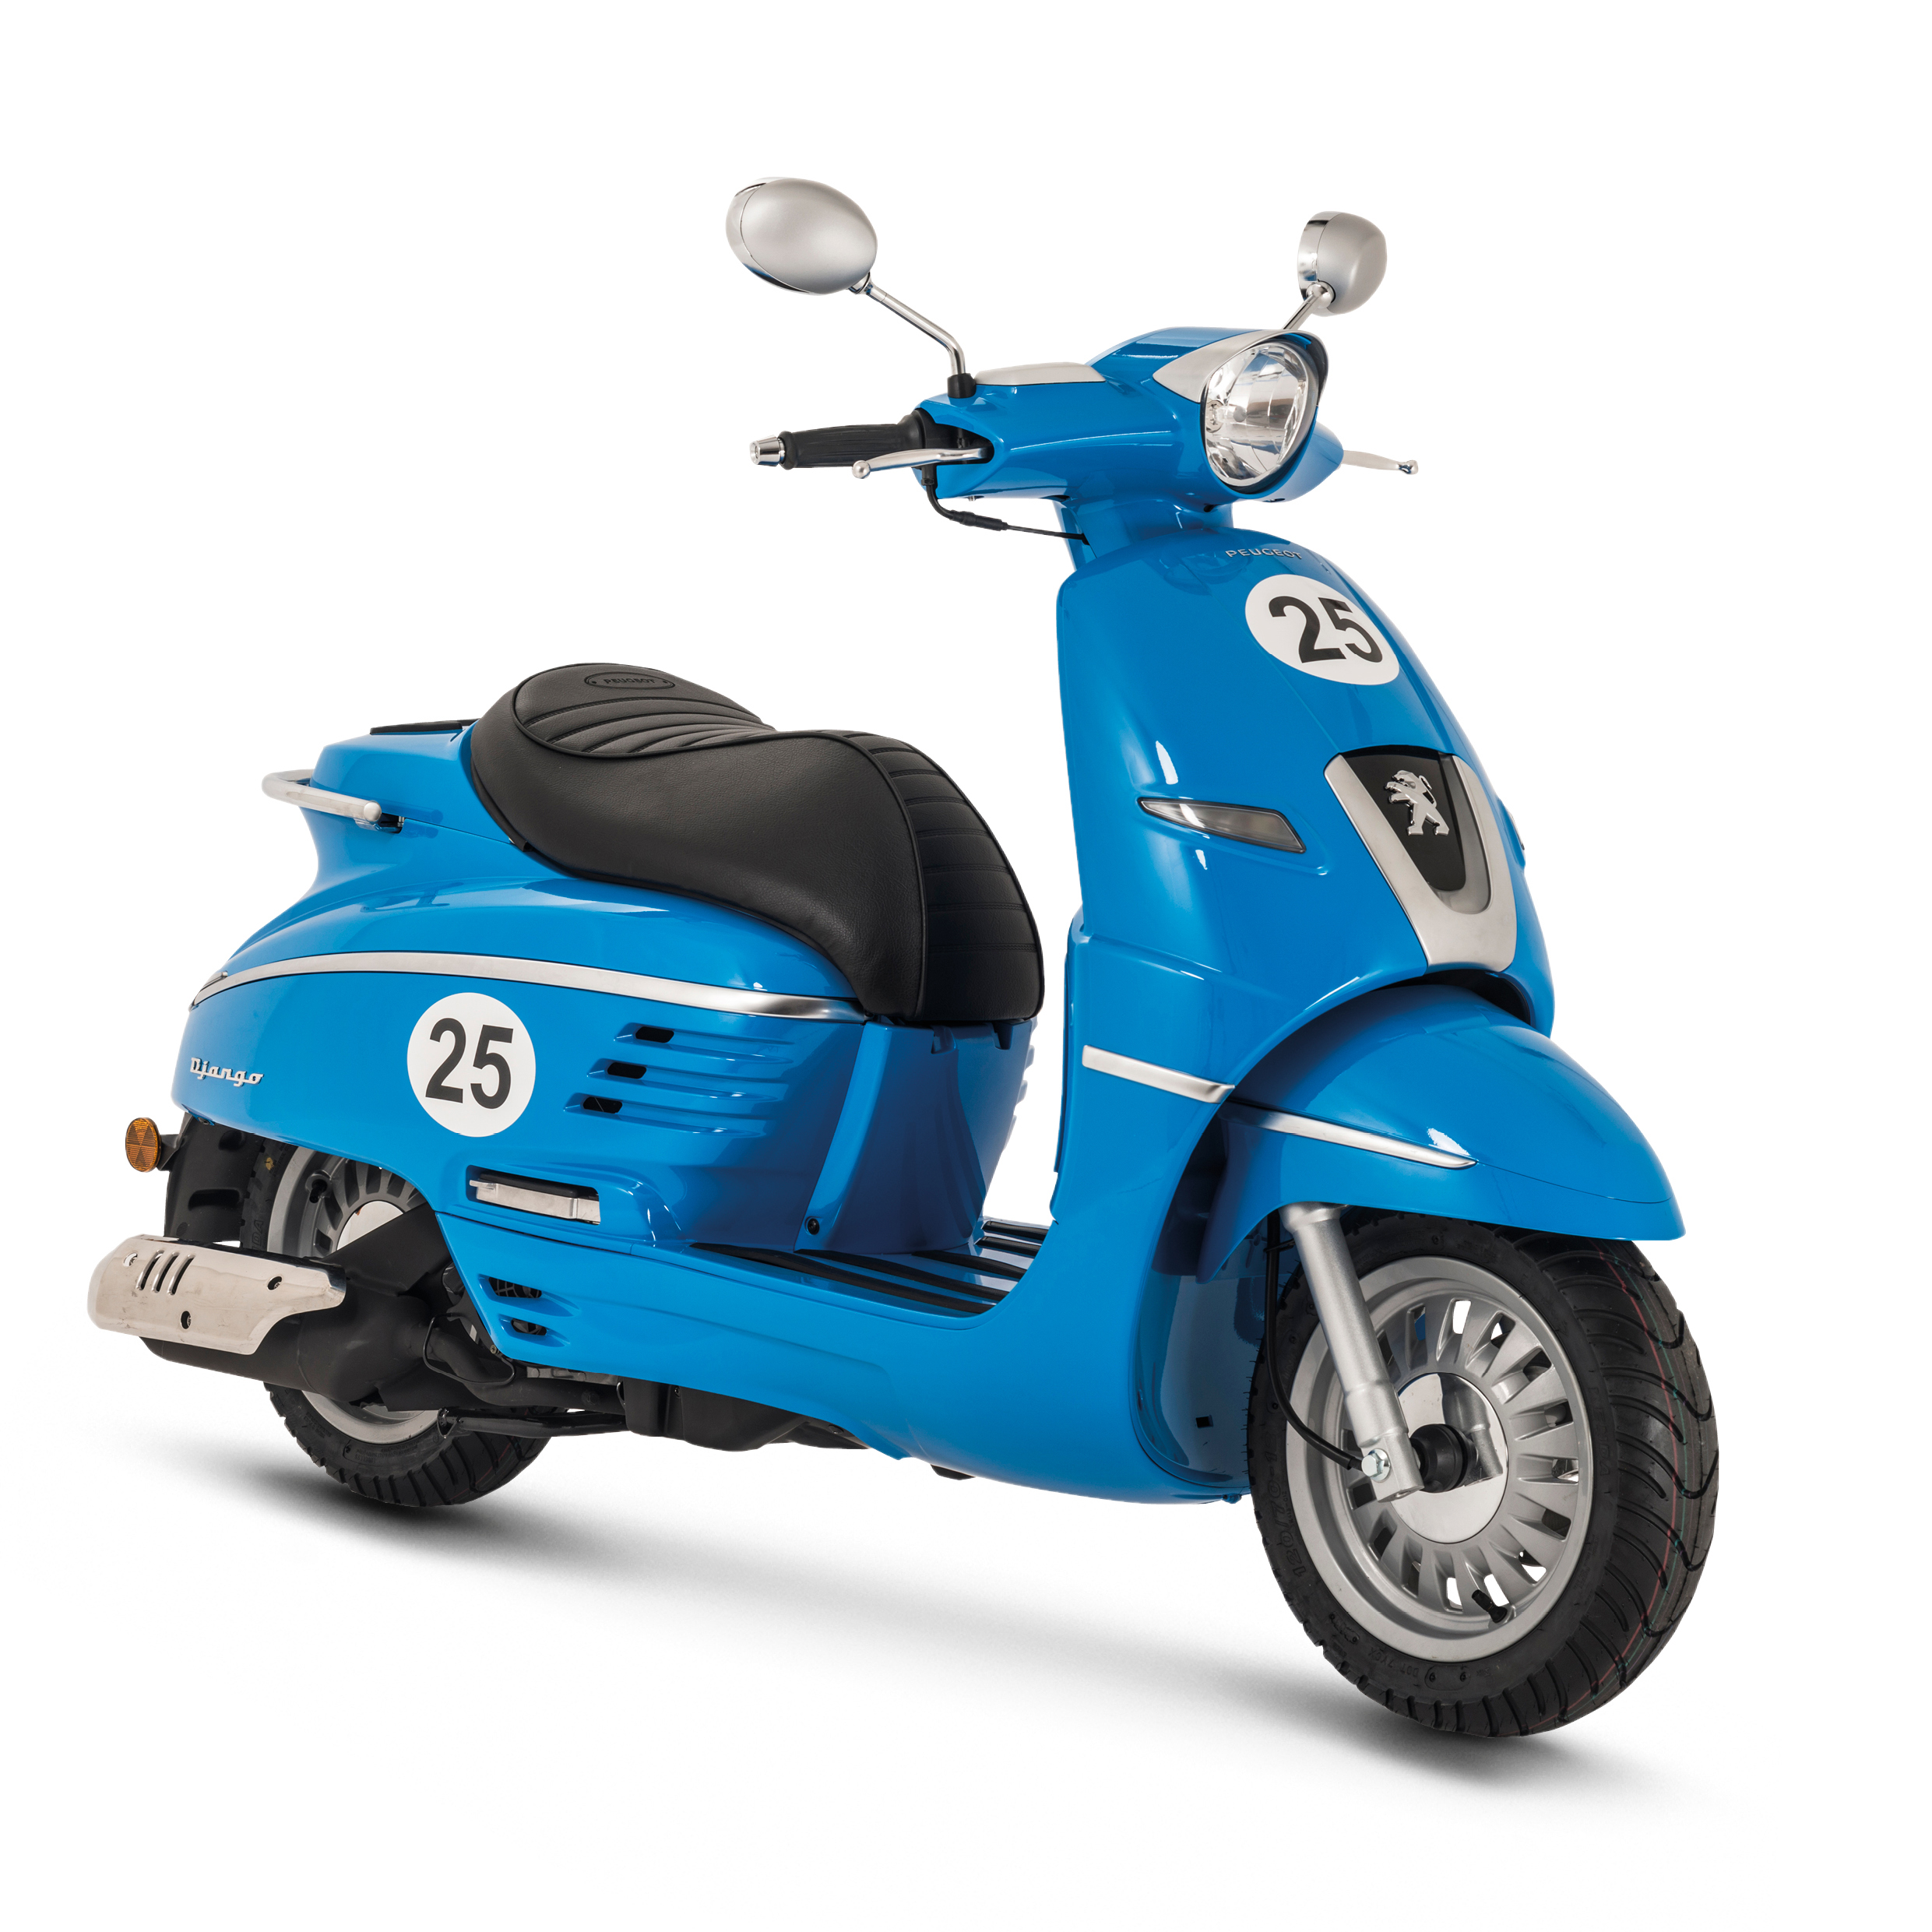 New: Peugeot Django retro scooters, available this summer